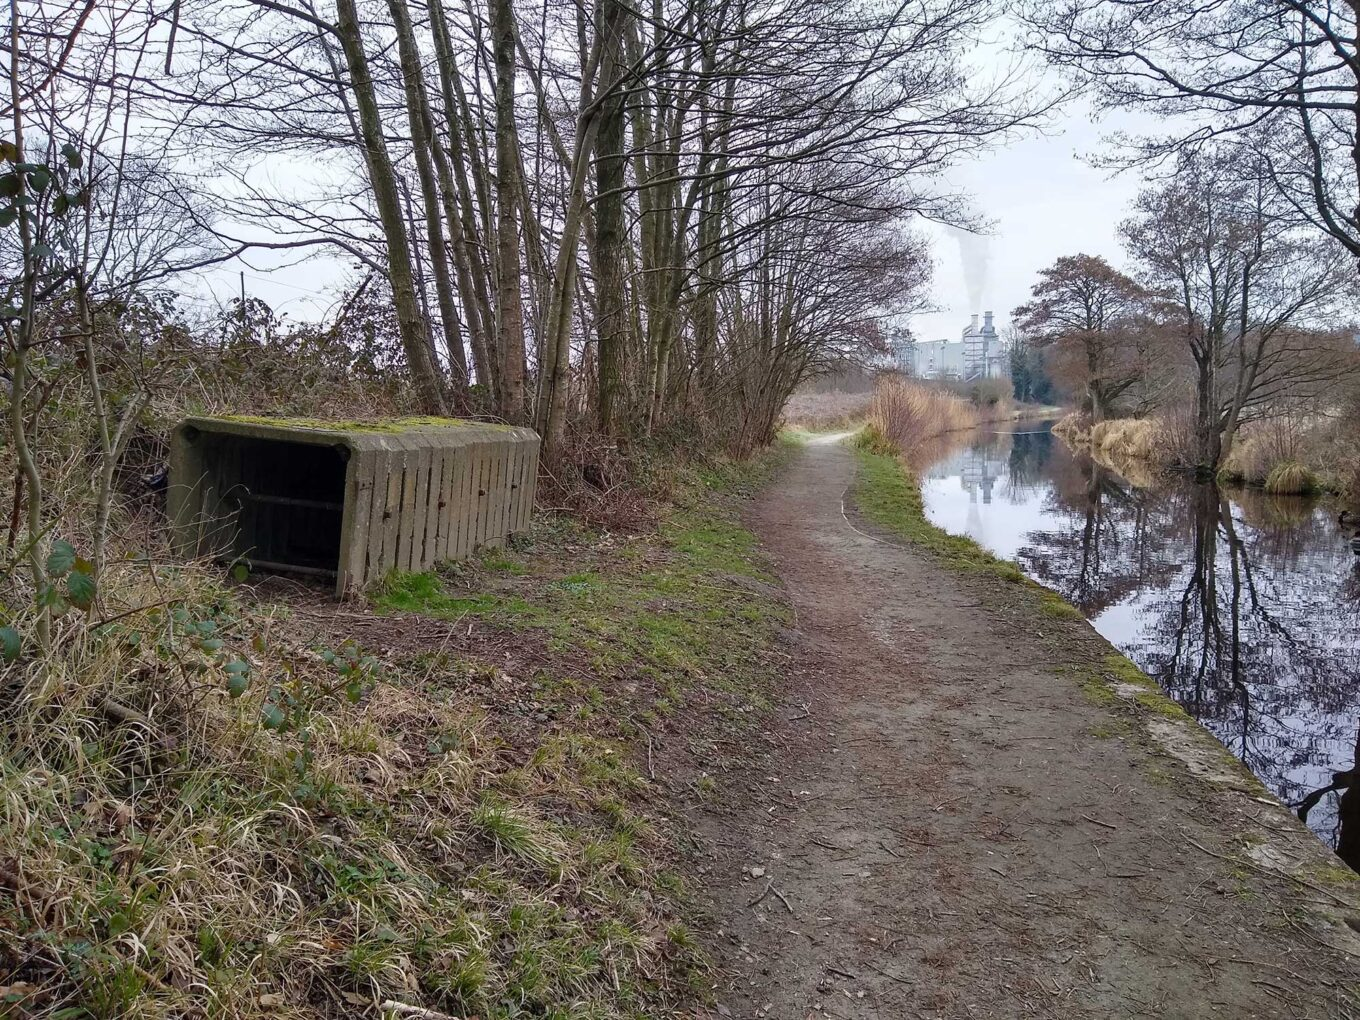 Shelters for stop planks can be seen at many places along the Llangollen Canal. This is a twentieth century design, made of reinforced concrete. It is at Red Bridge, near Chirk Marina.